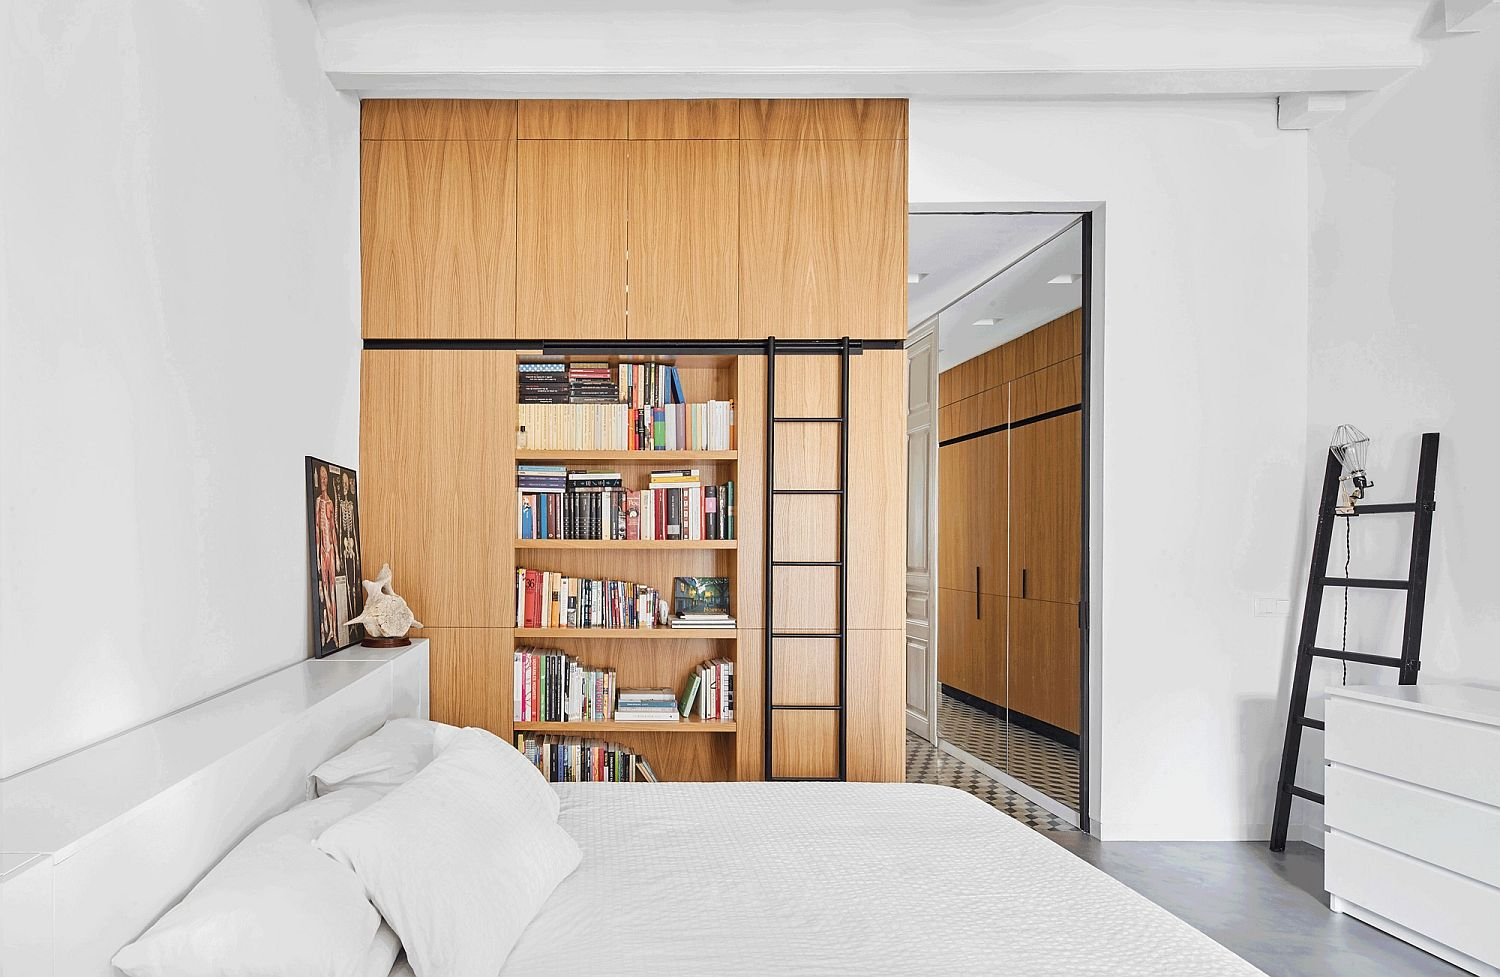 Oak cabinets and multi-tasking shelves are spread out in the apartment